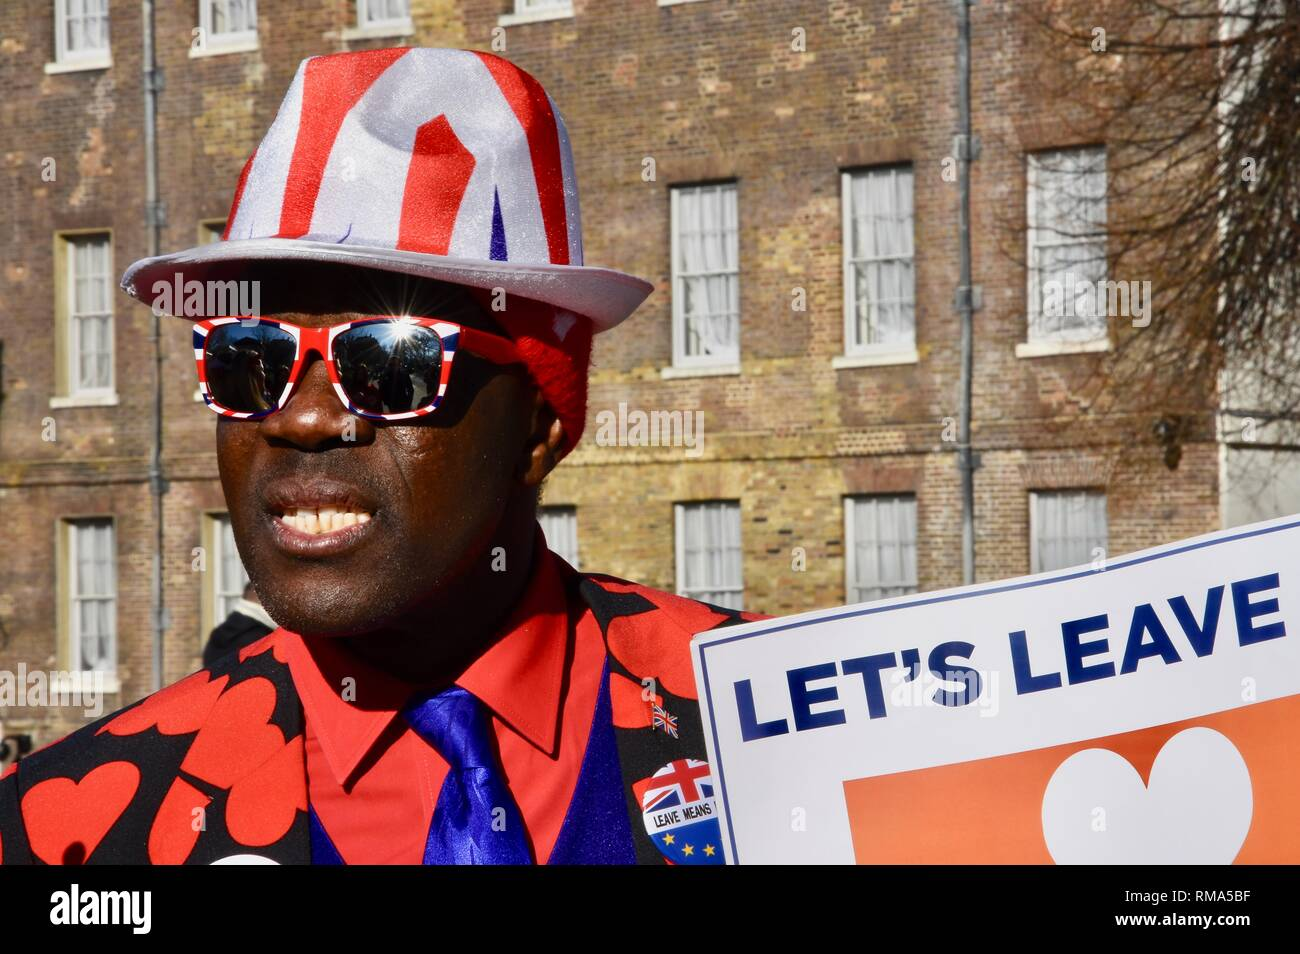 London, UK. 14th February, 2019. Brexiteer Valentine's Day Protester, Houses of Parliament, London.UK Credit: michael melia/Alamy Live News - Stock Image